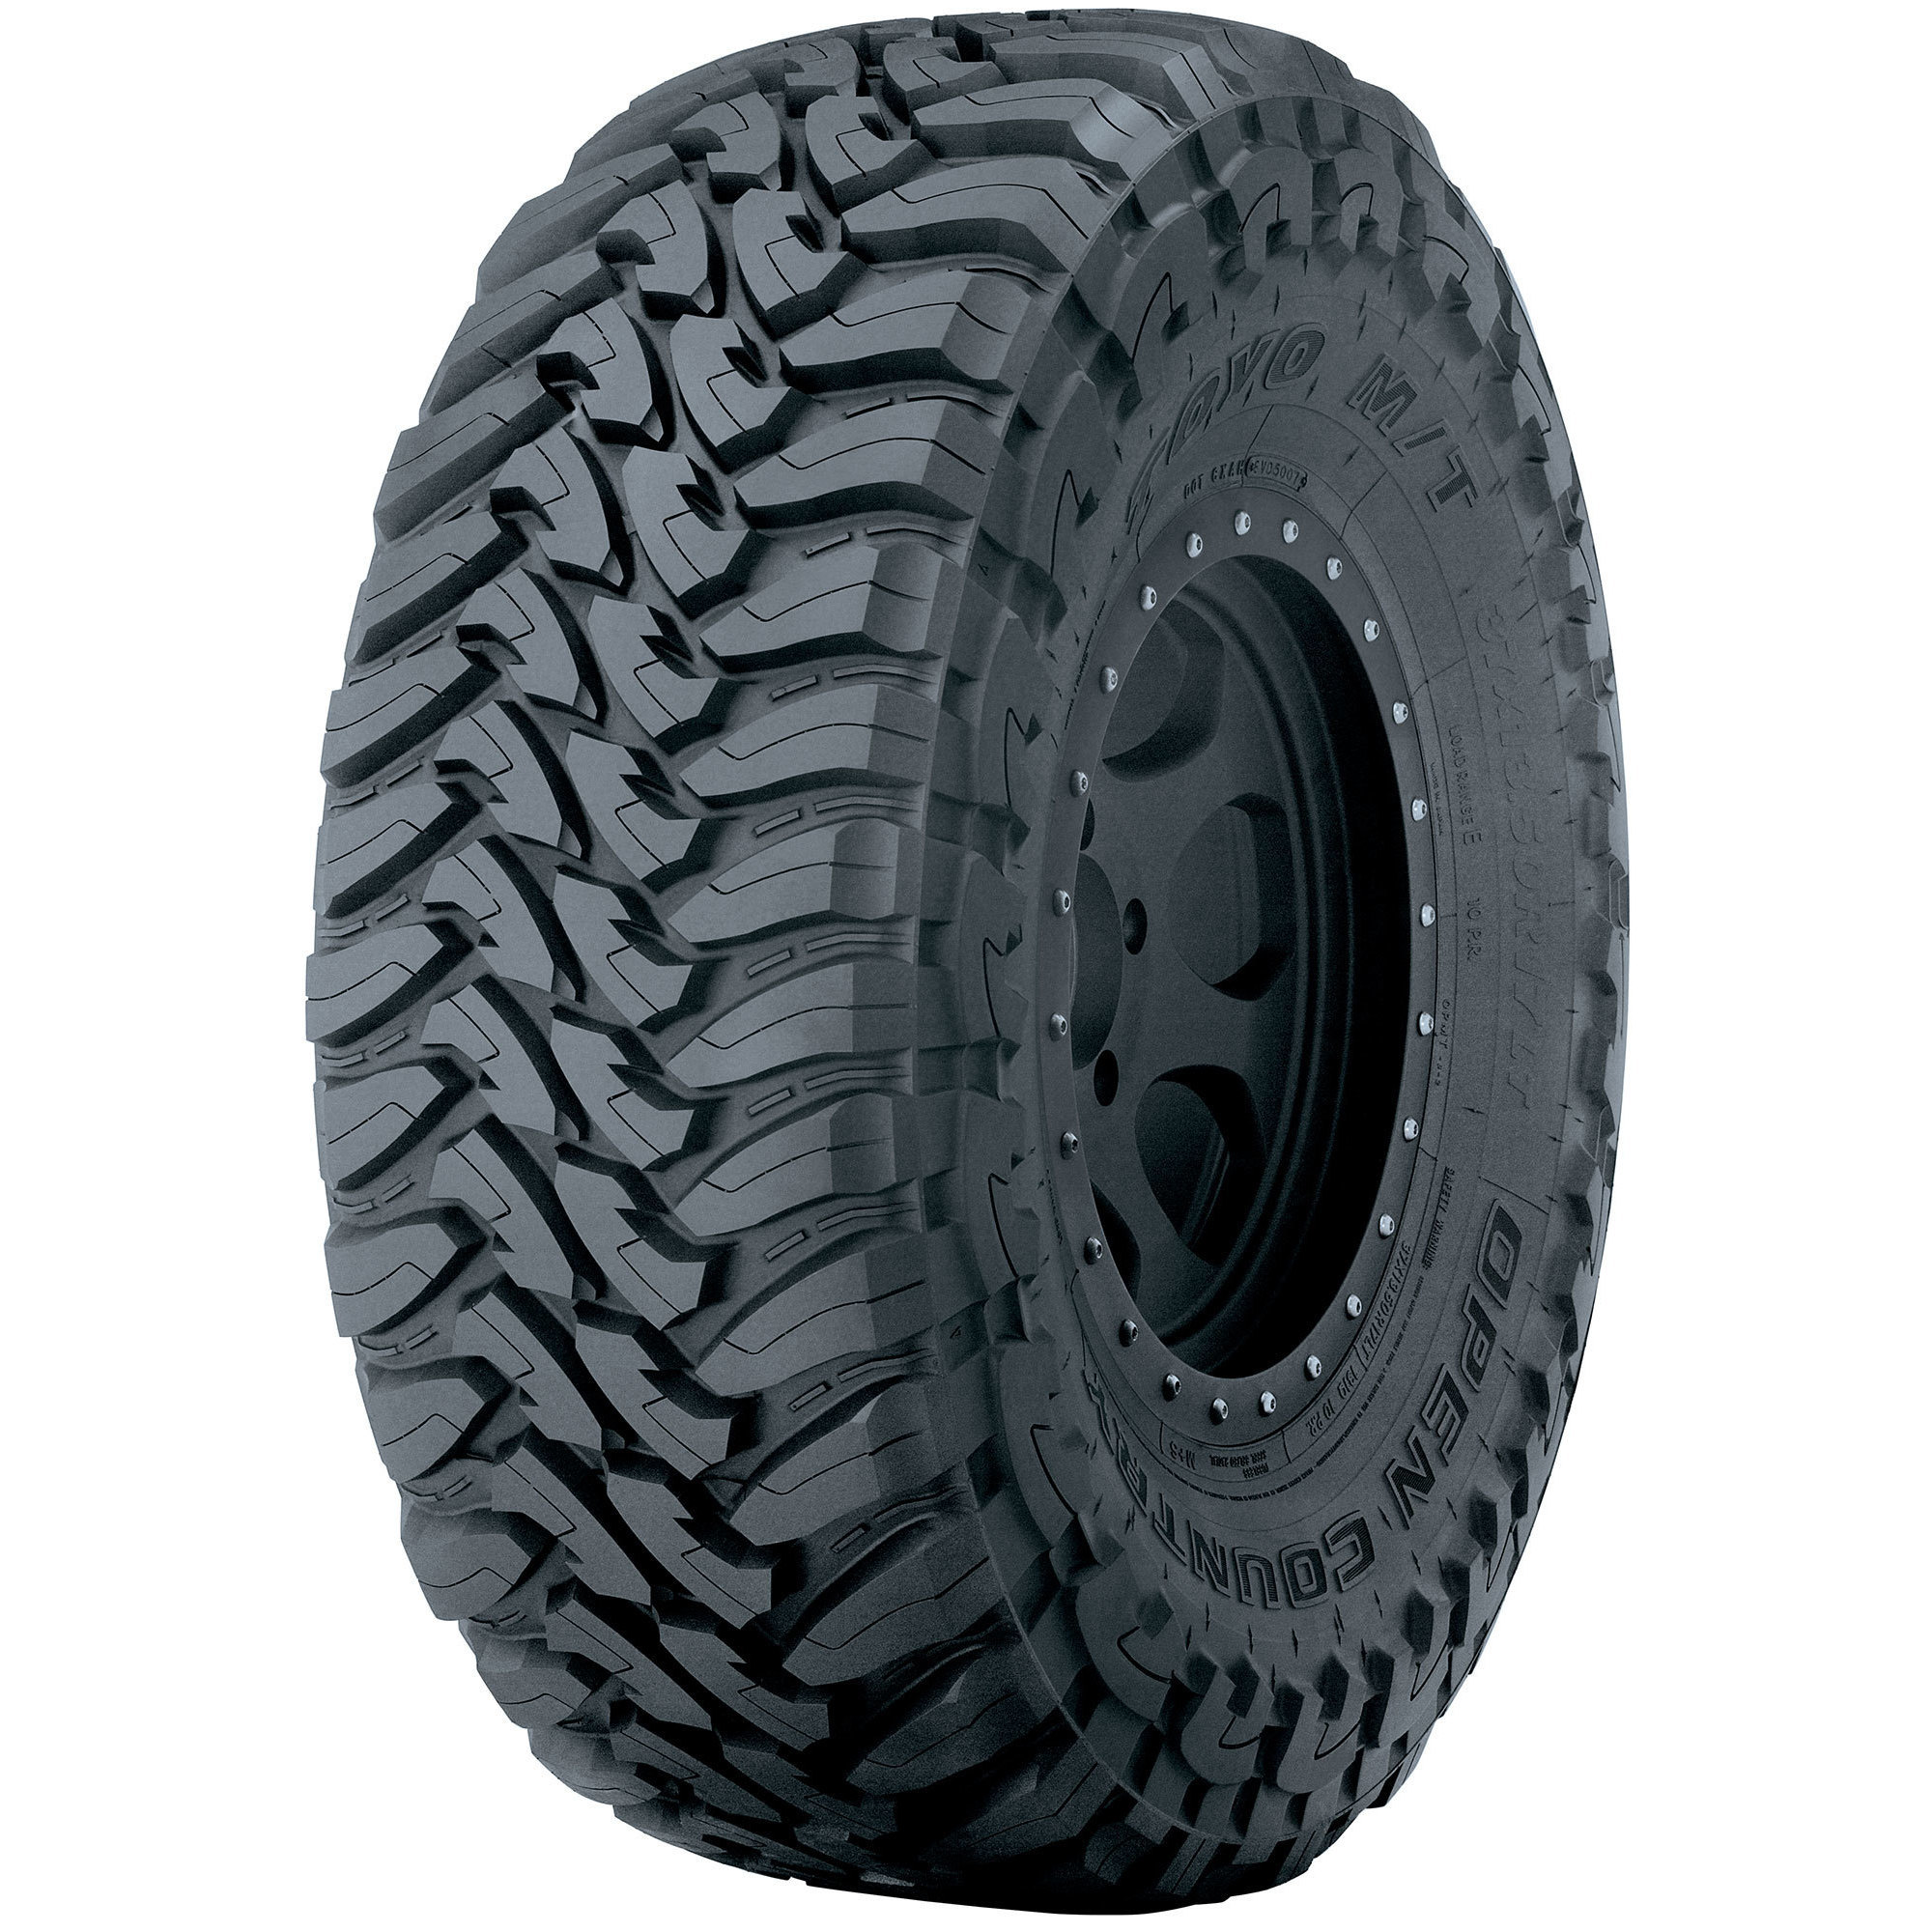 Used Mud Tires For Sale >> Customer-favorite tire: Toyo Open Country M/T | TireBuyer.com Blog